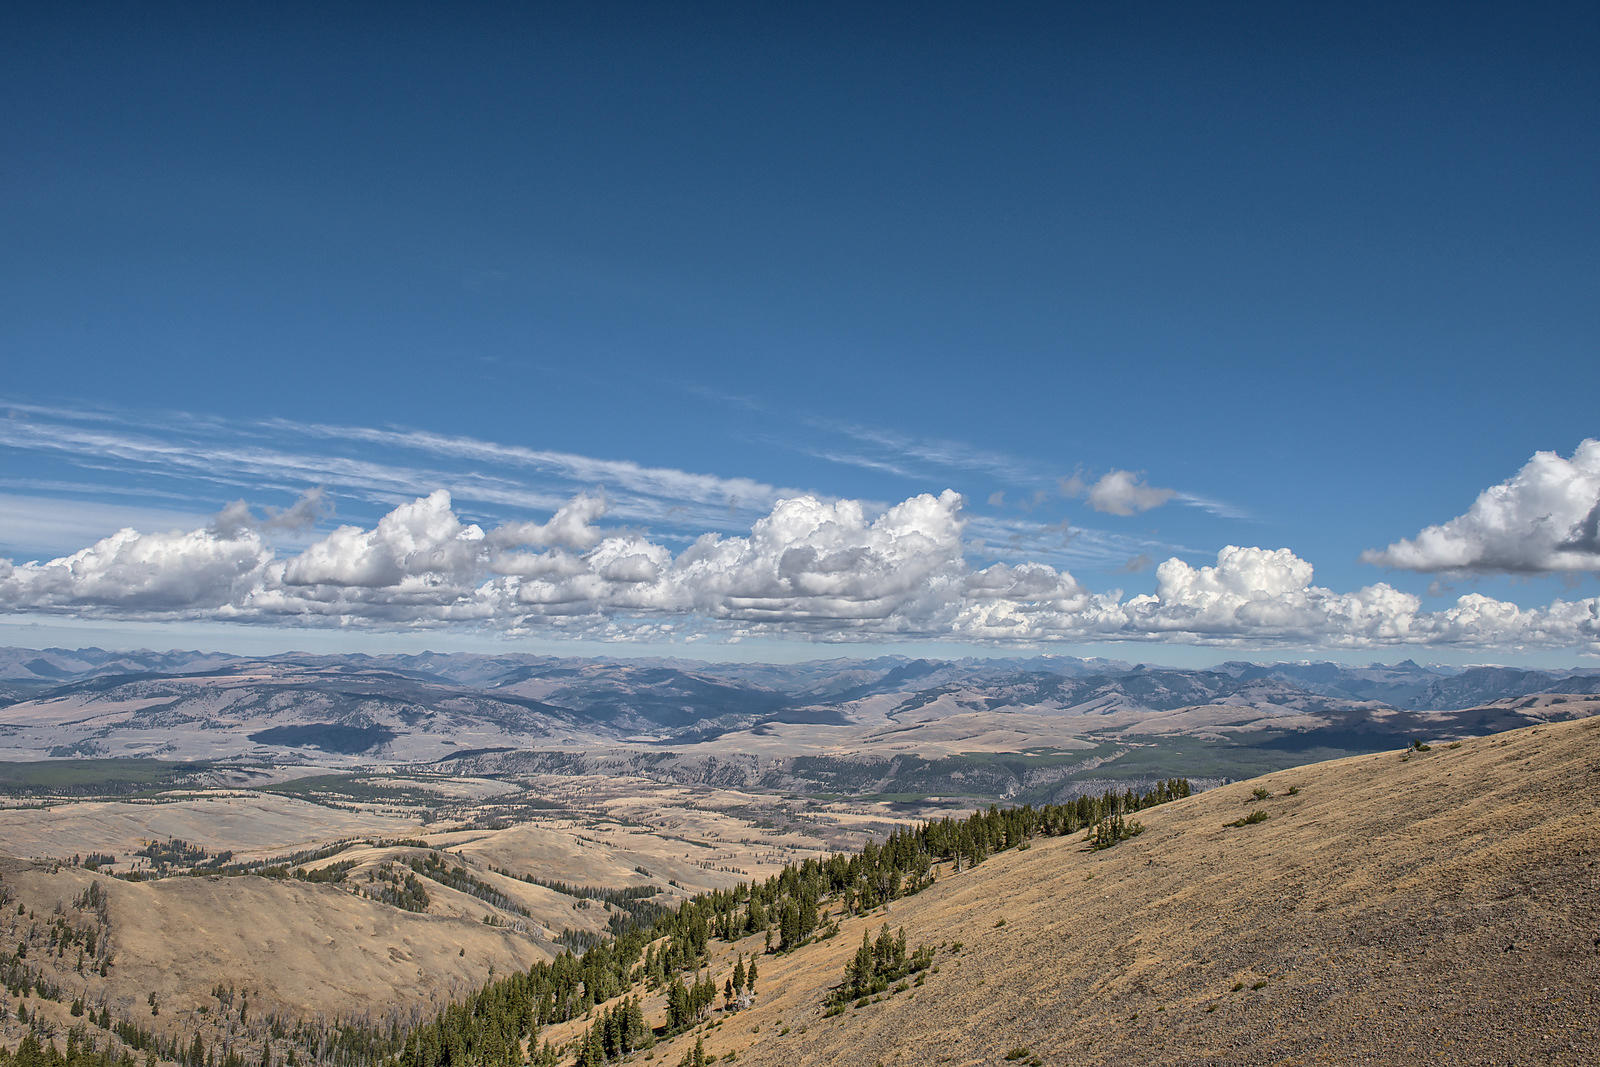 Yellowstone-View-From-Washburn-0288682-HDR